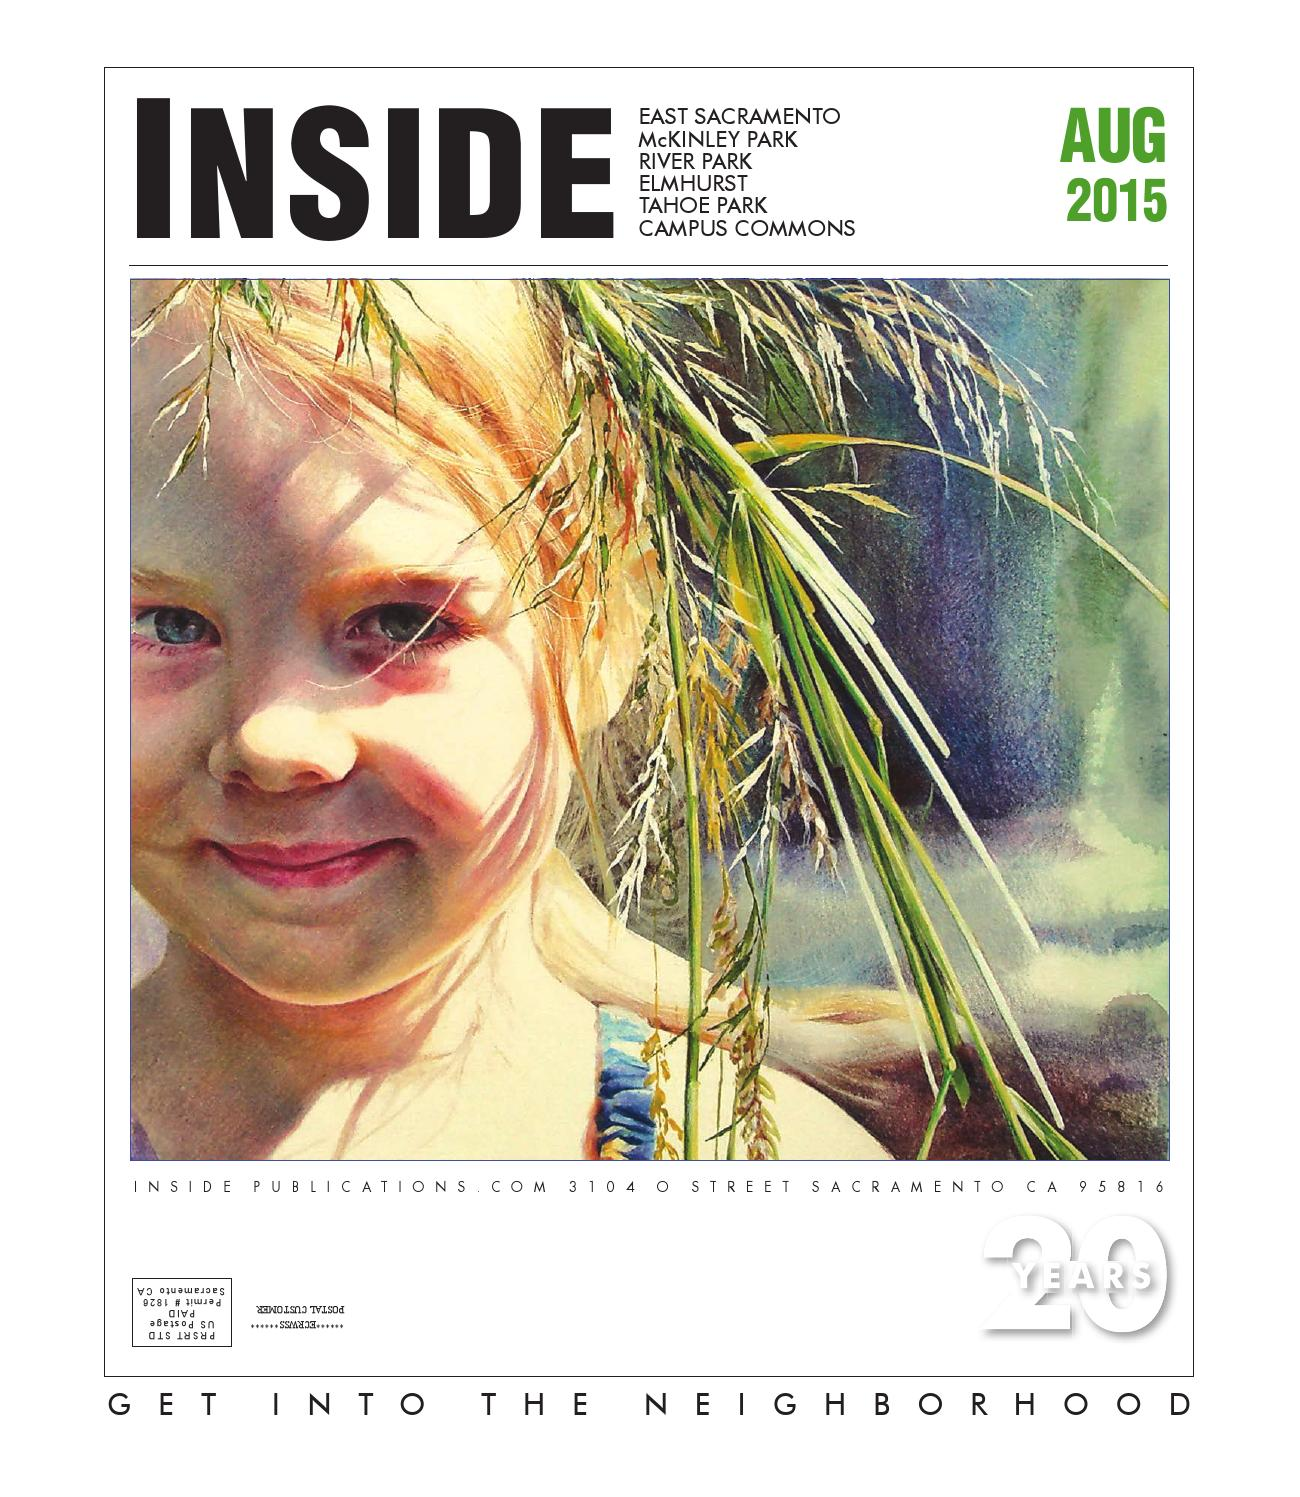 Inside east sacramento aug 2015 by Inside Publications issuu